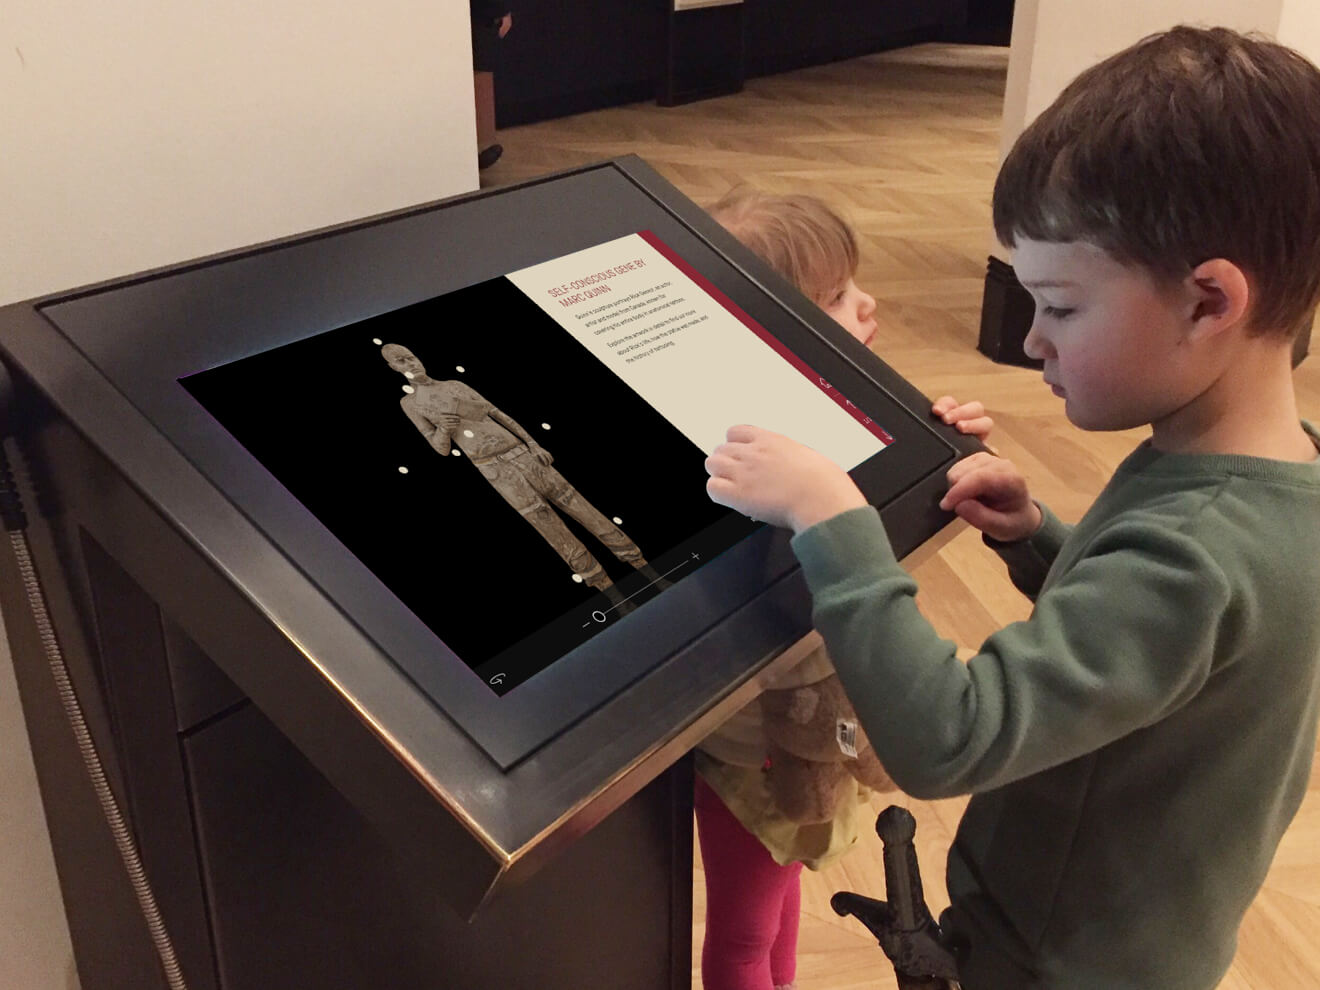 A child playing with the kiosk in The Science Museum